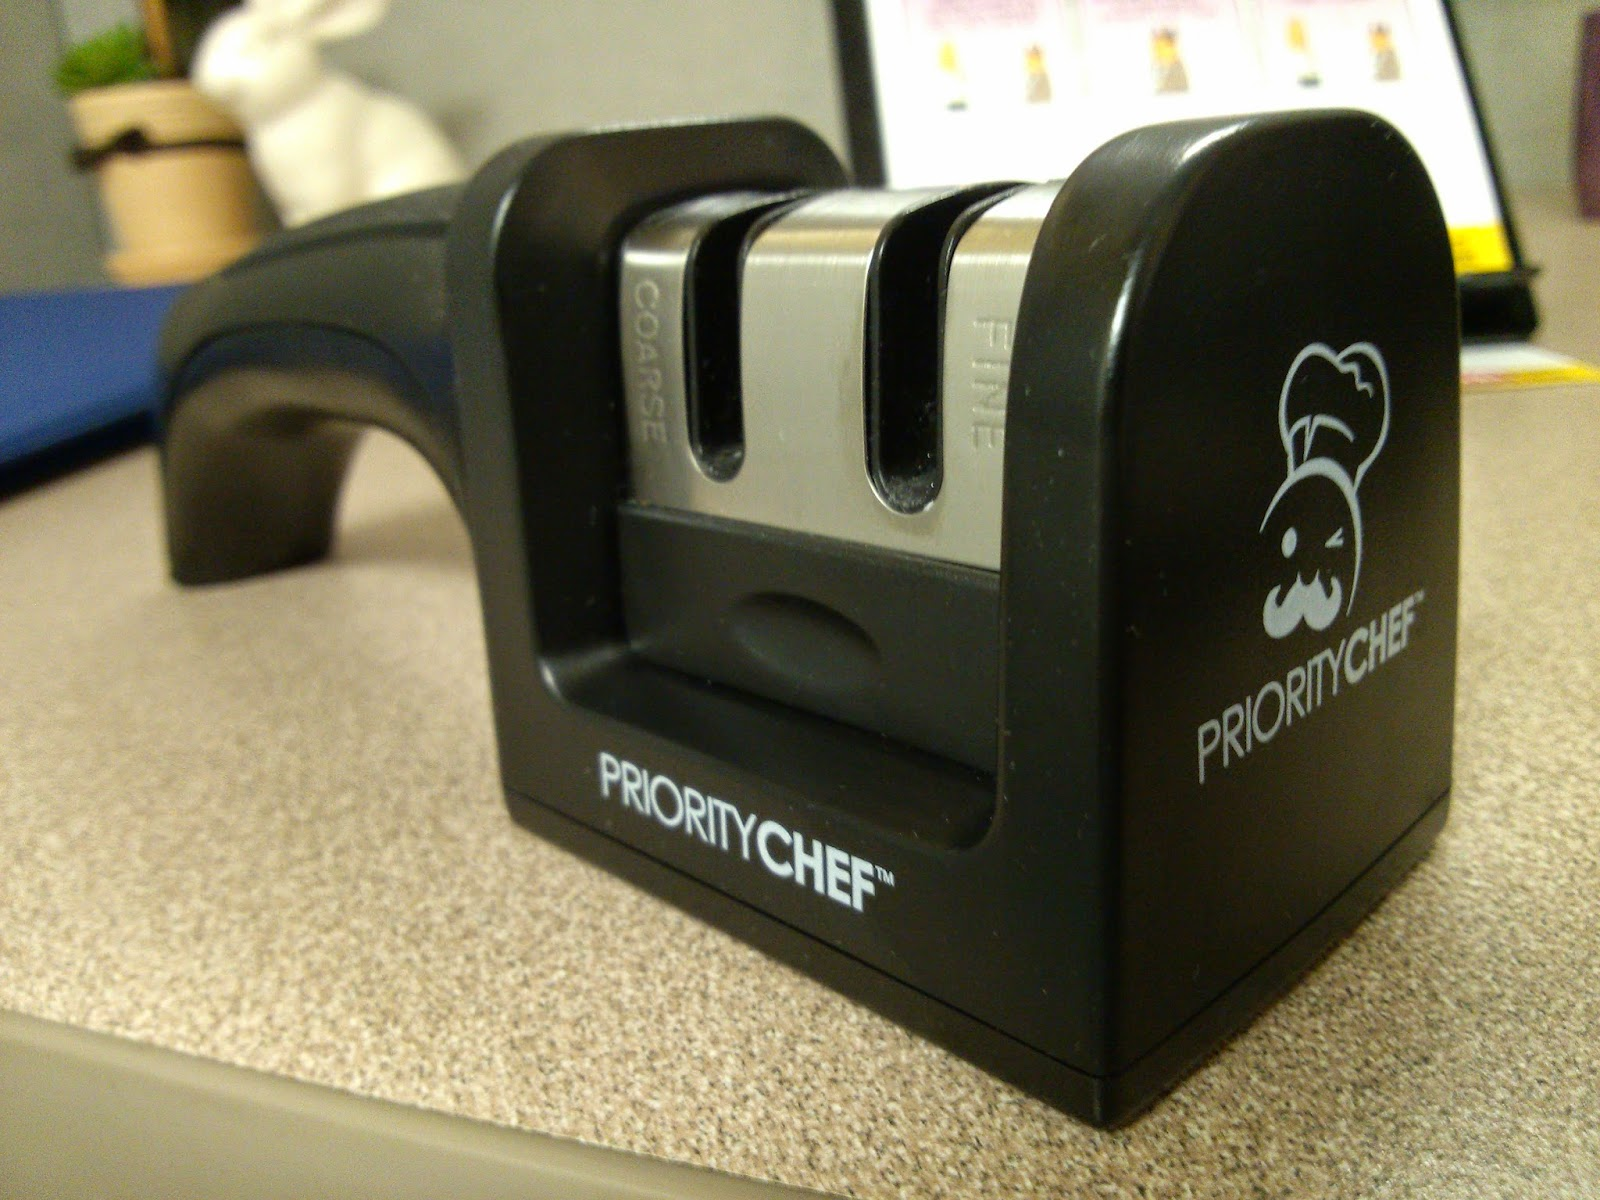 Priority Chef Premium Knife Sharpener Review